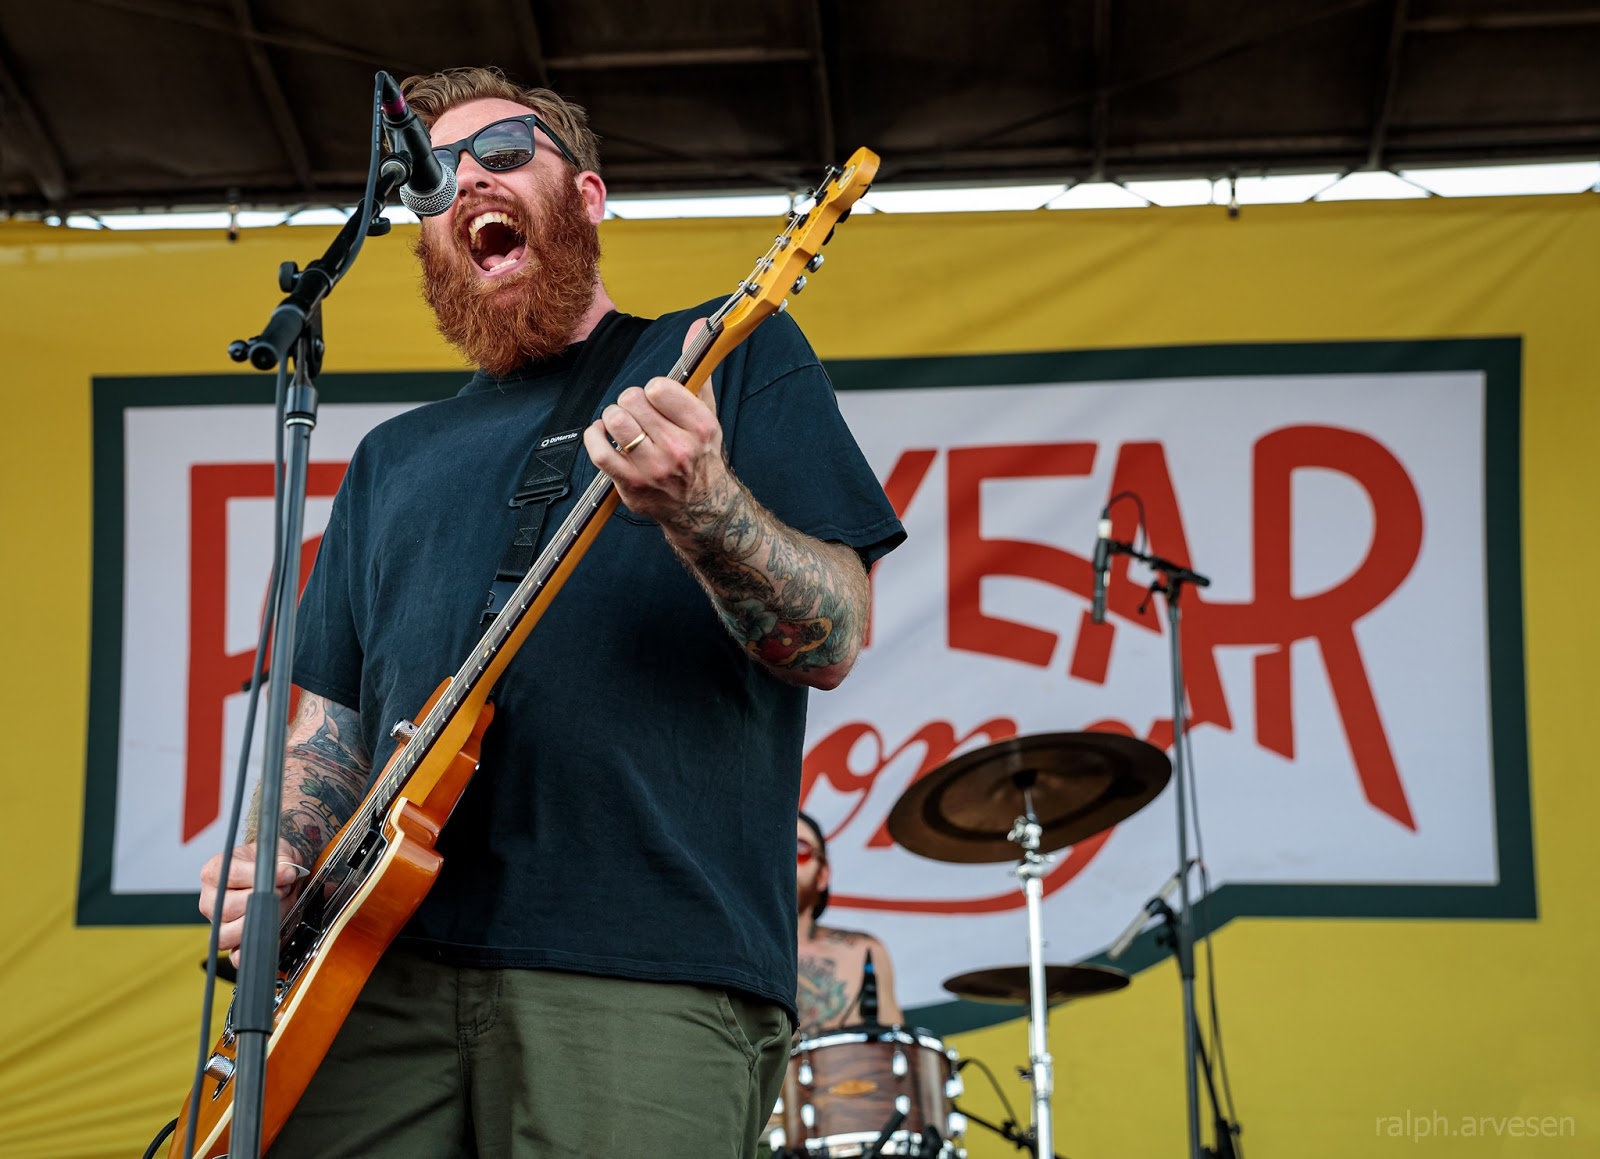 Four Year Strong | Texas Review | Ralph Arvesen